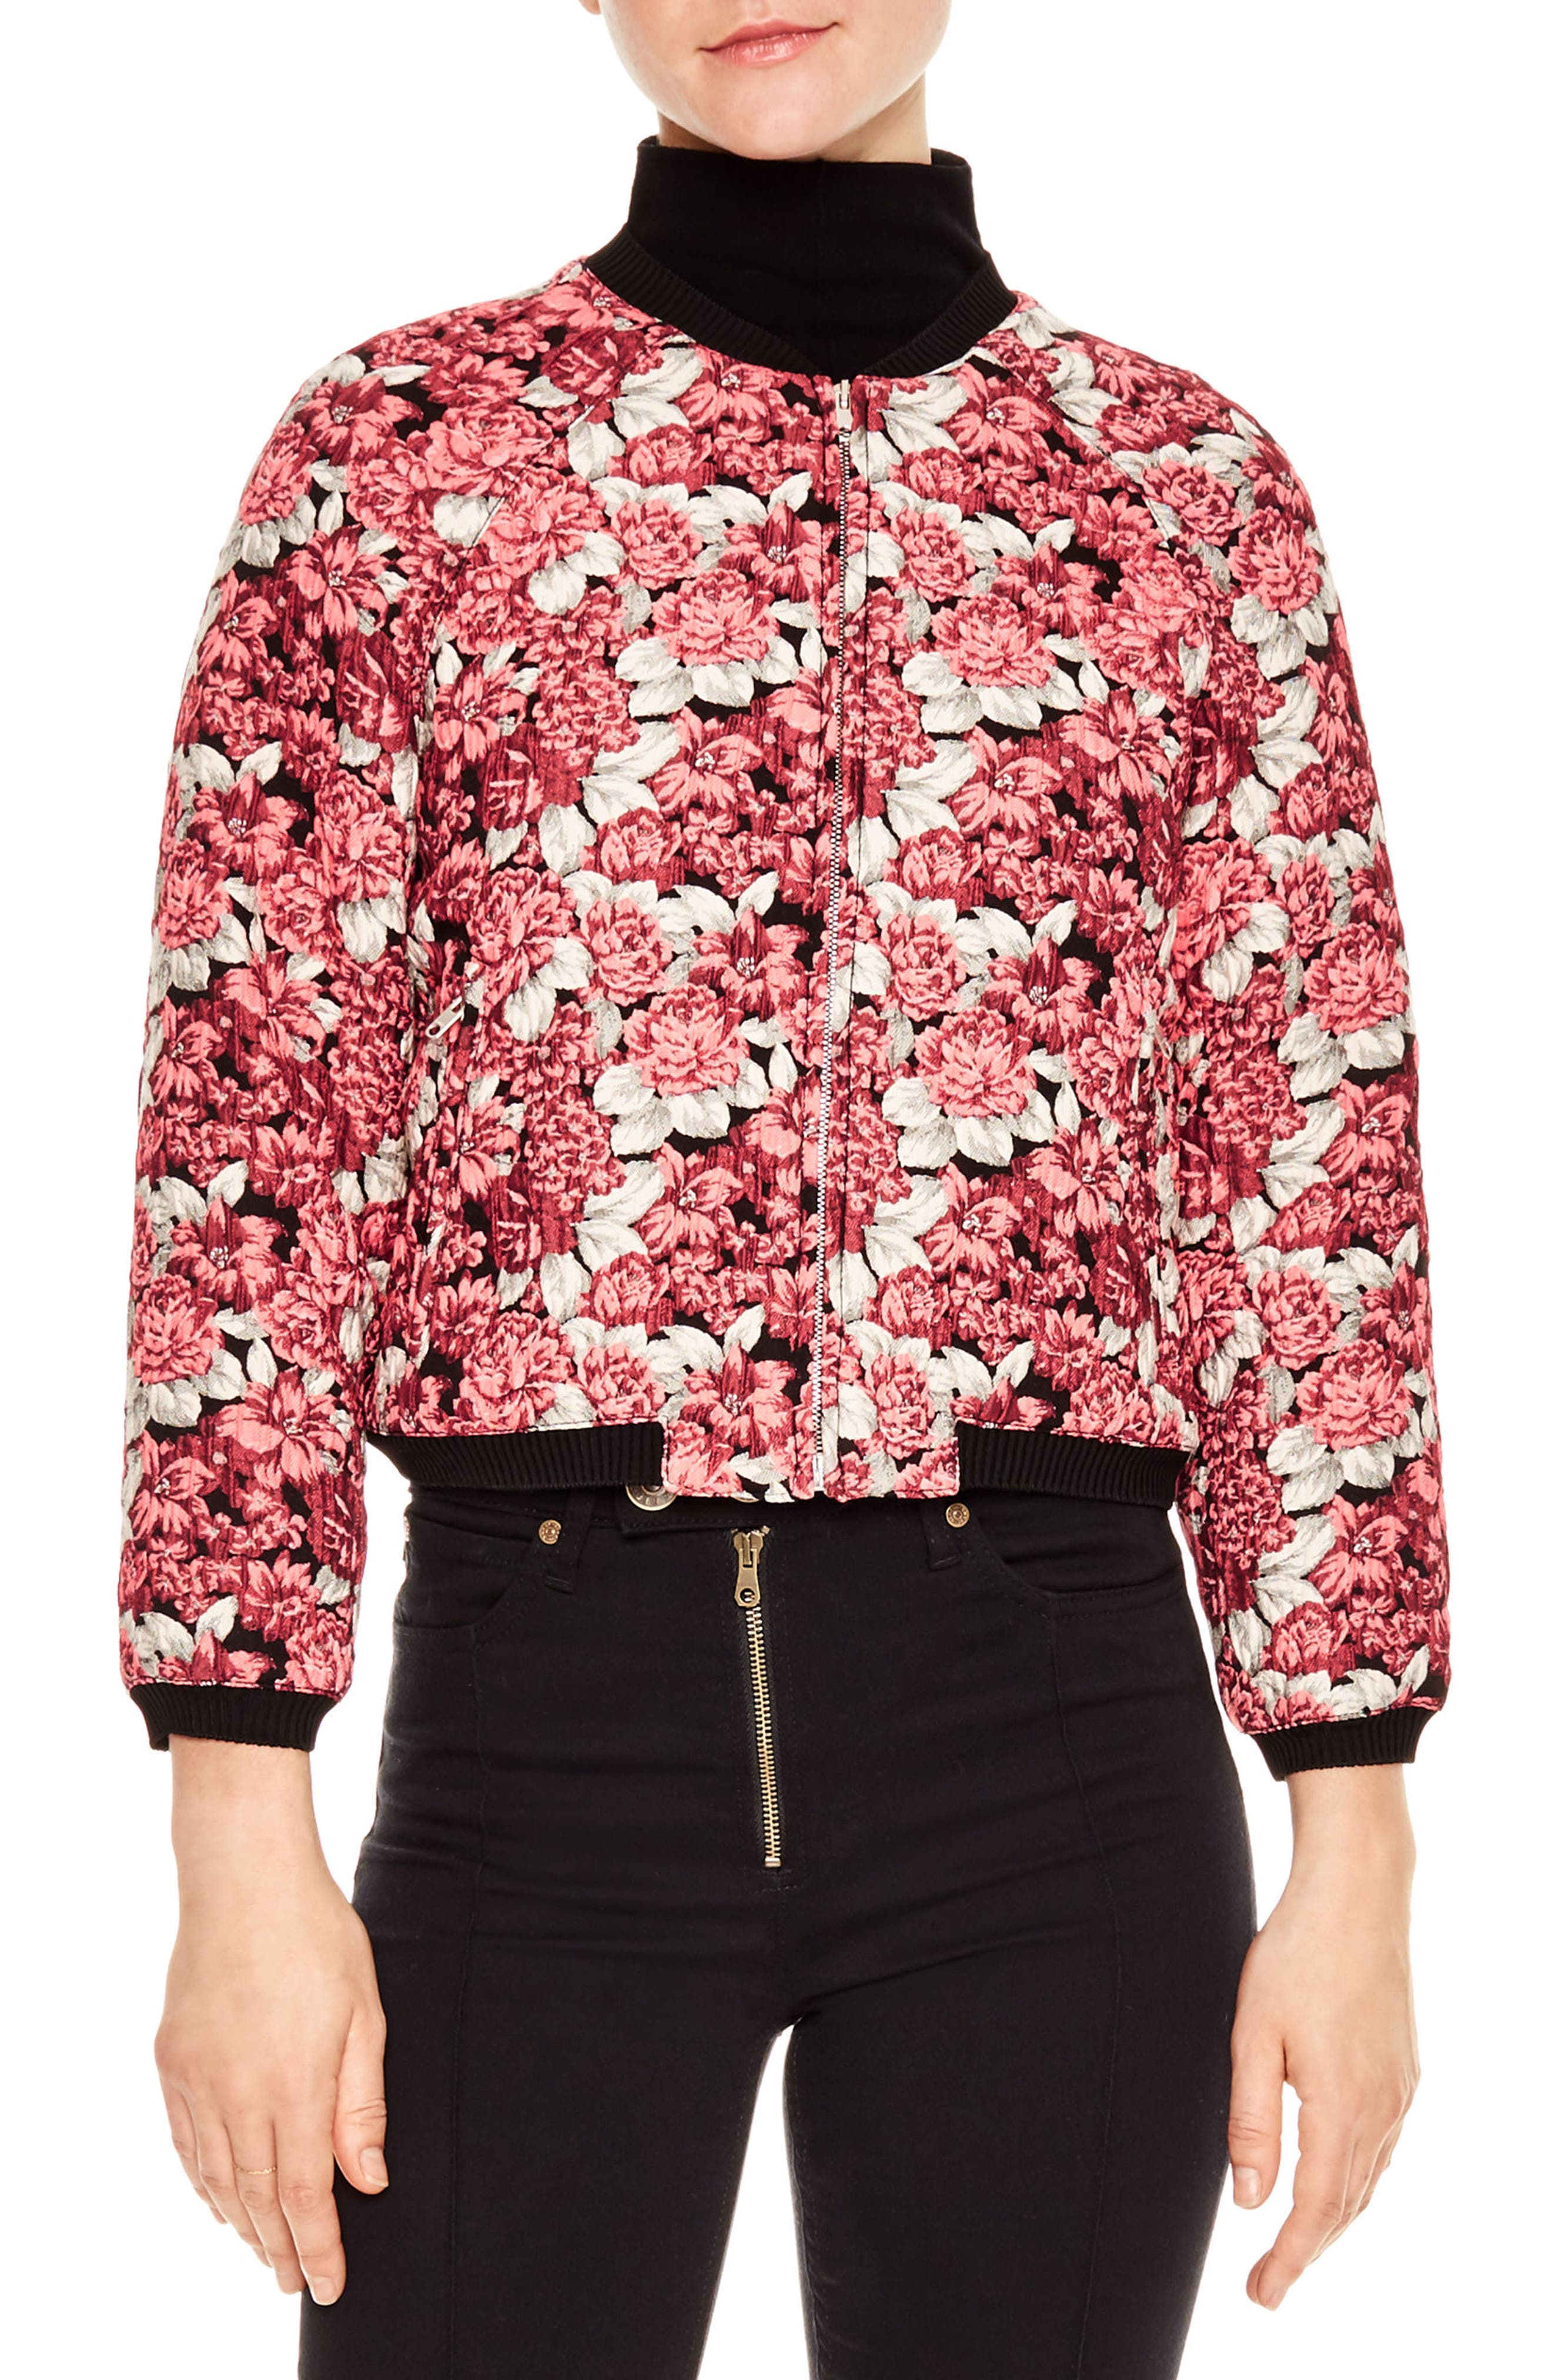 Evora Puffer Bomber Jacket,                             Main thumbnail 1, color,                             Pink